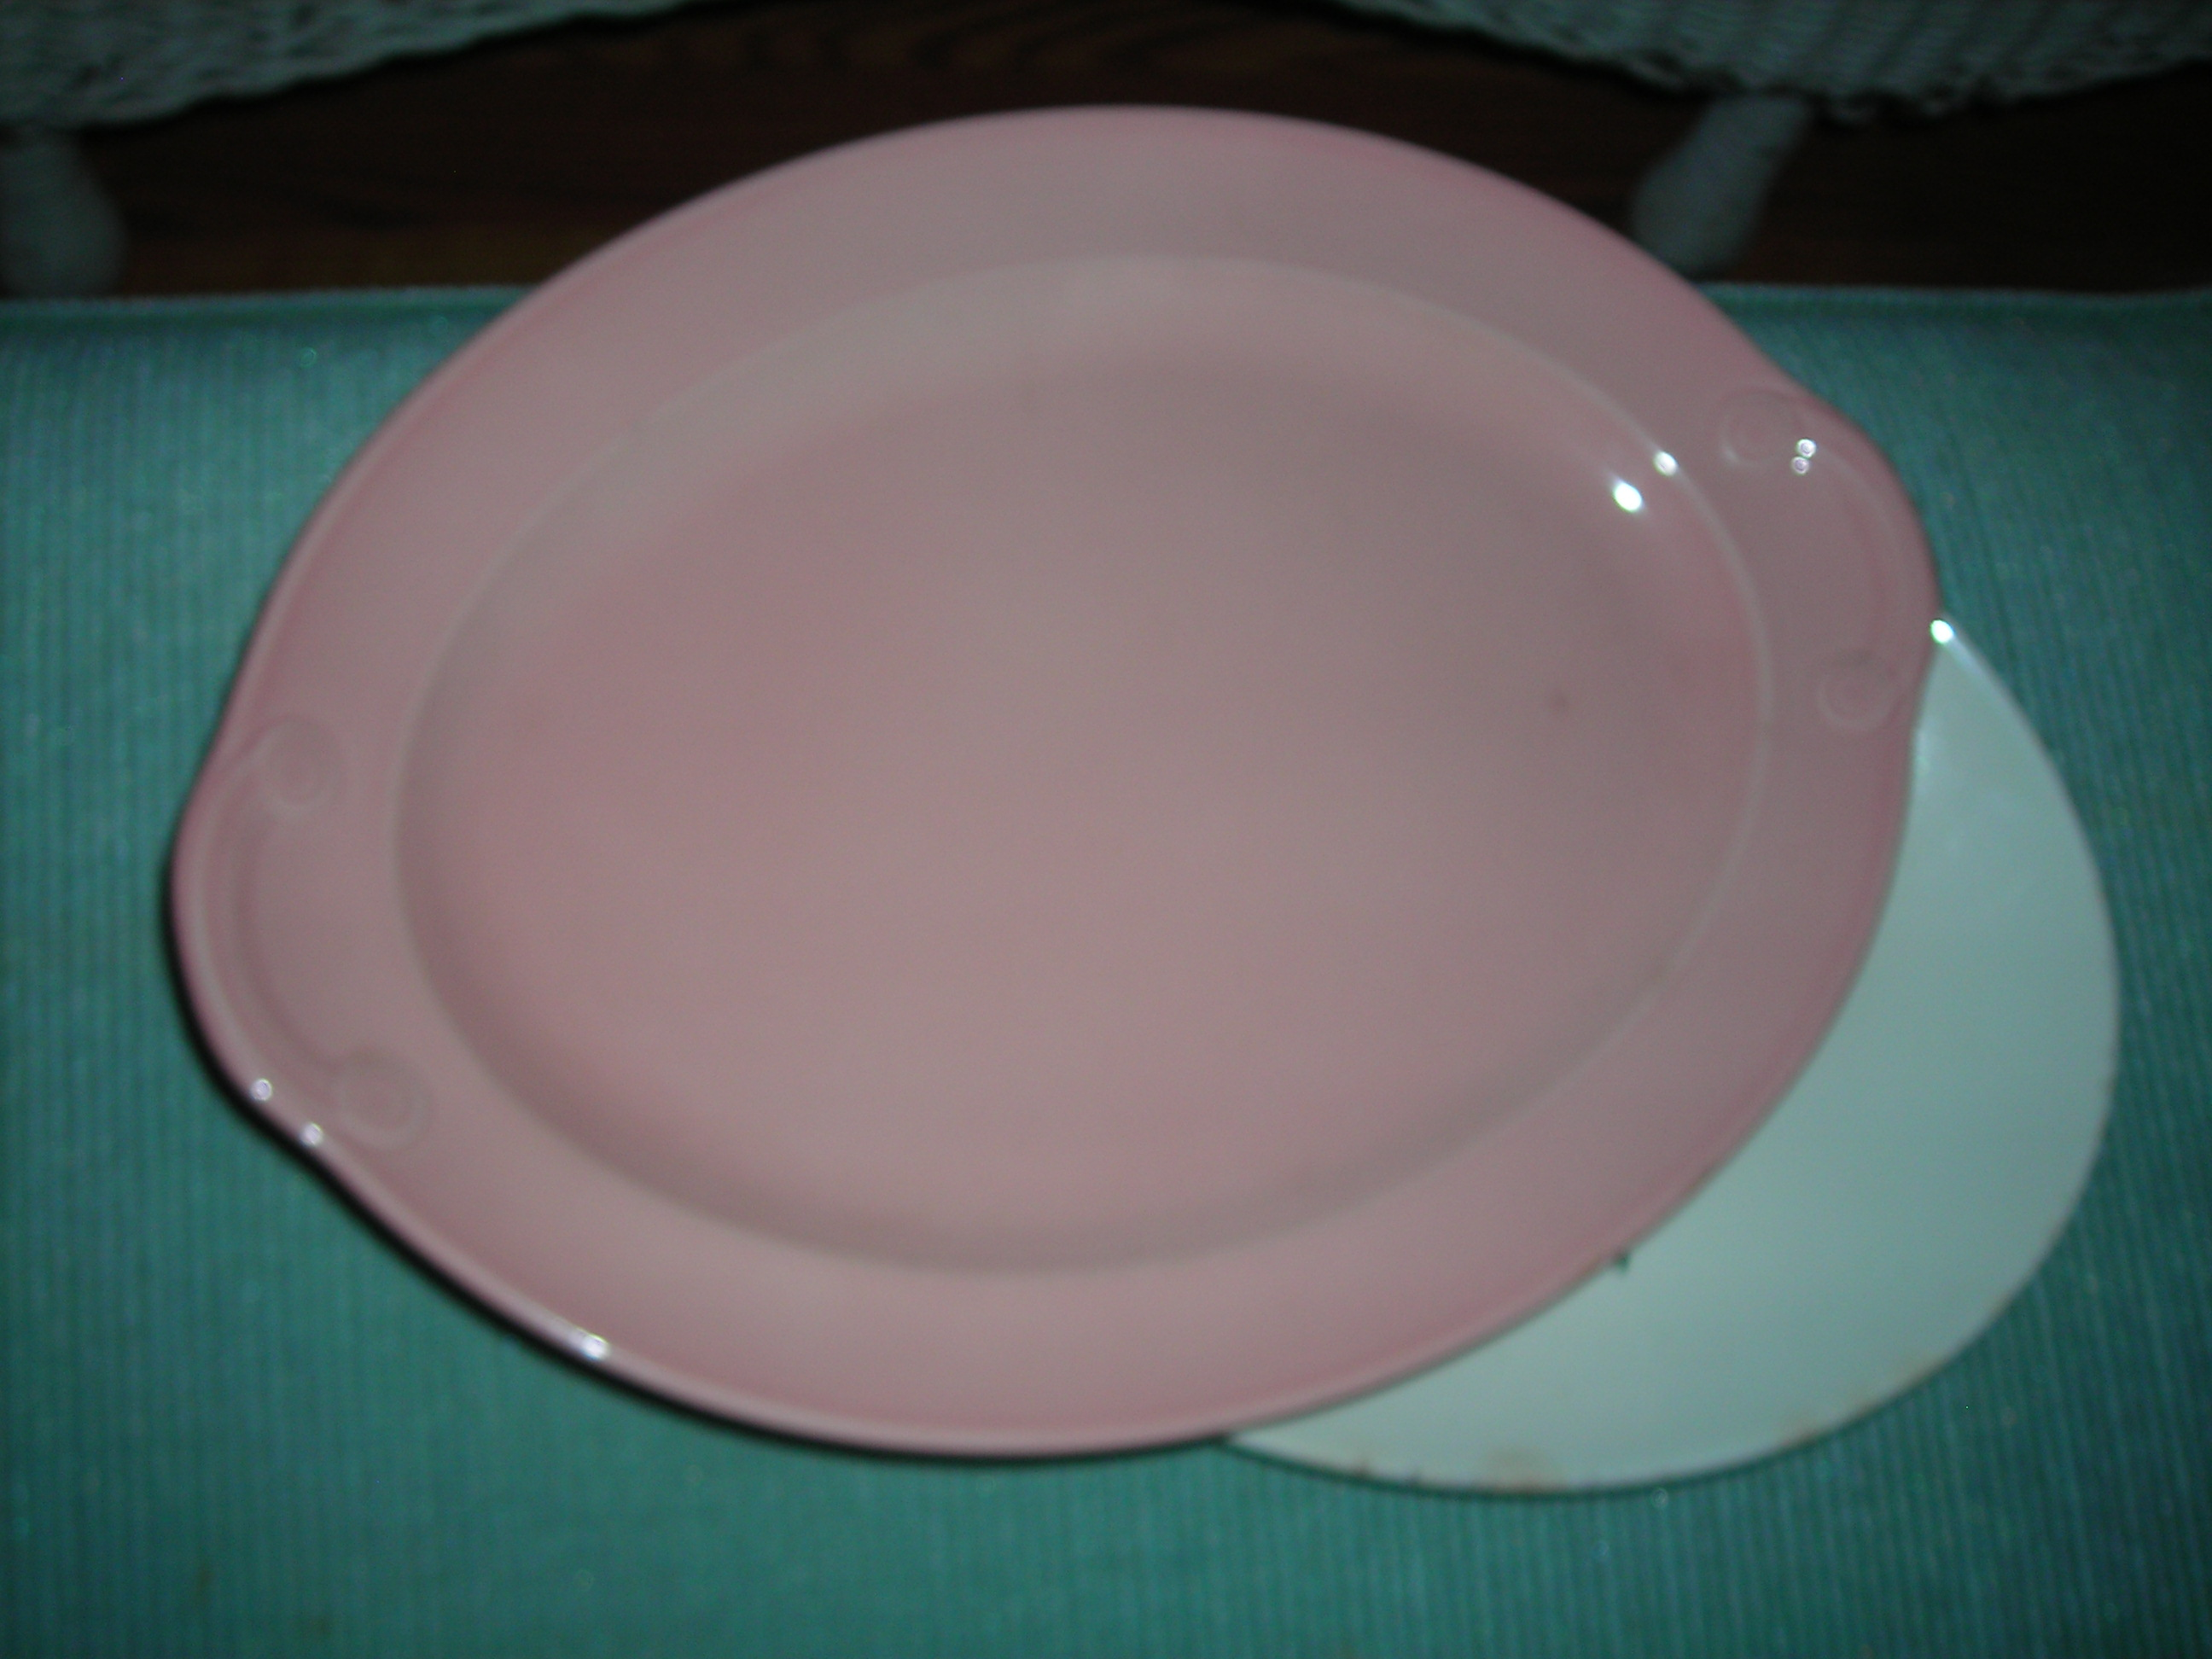 woohoo! found a PINK lu-ray platter for a steal! will add her to my growing lu-ray collection that started with my mom's blue platter. love those pastels!!